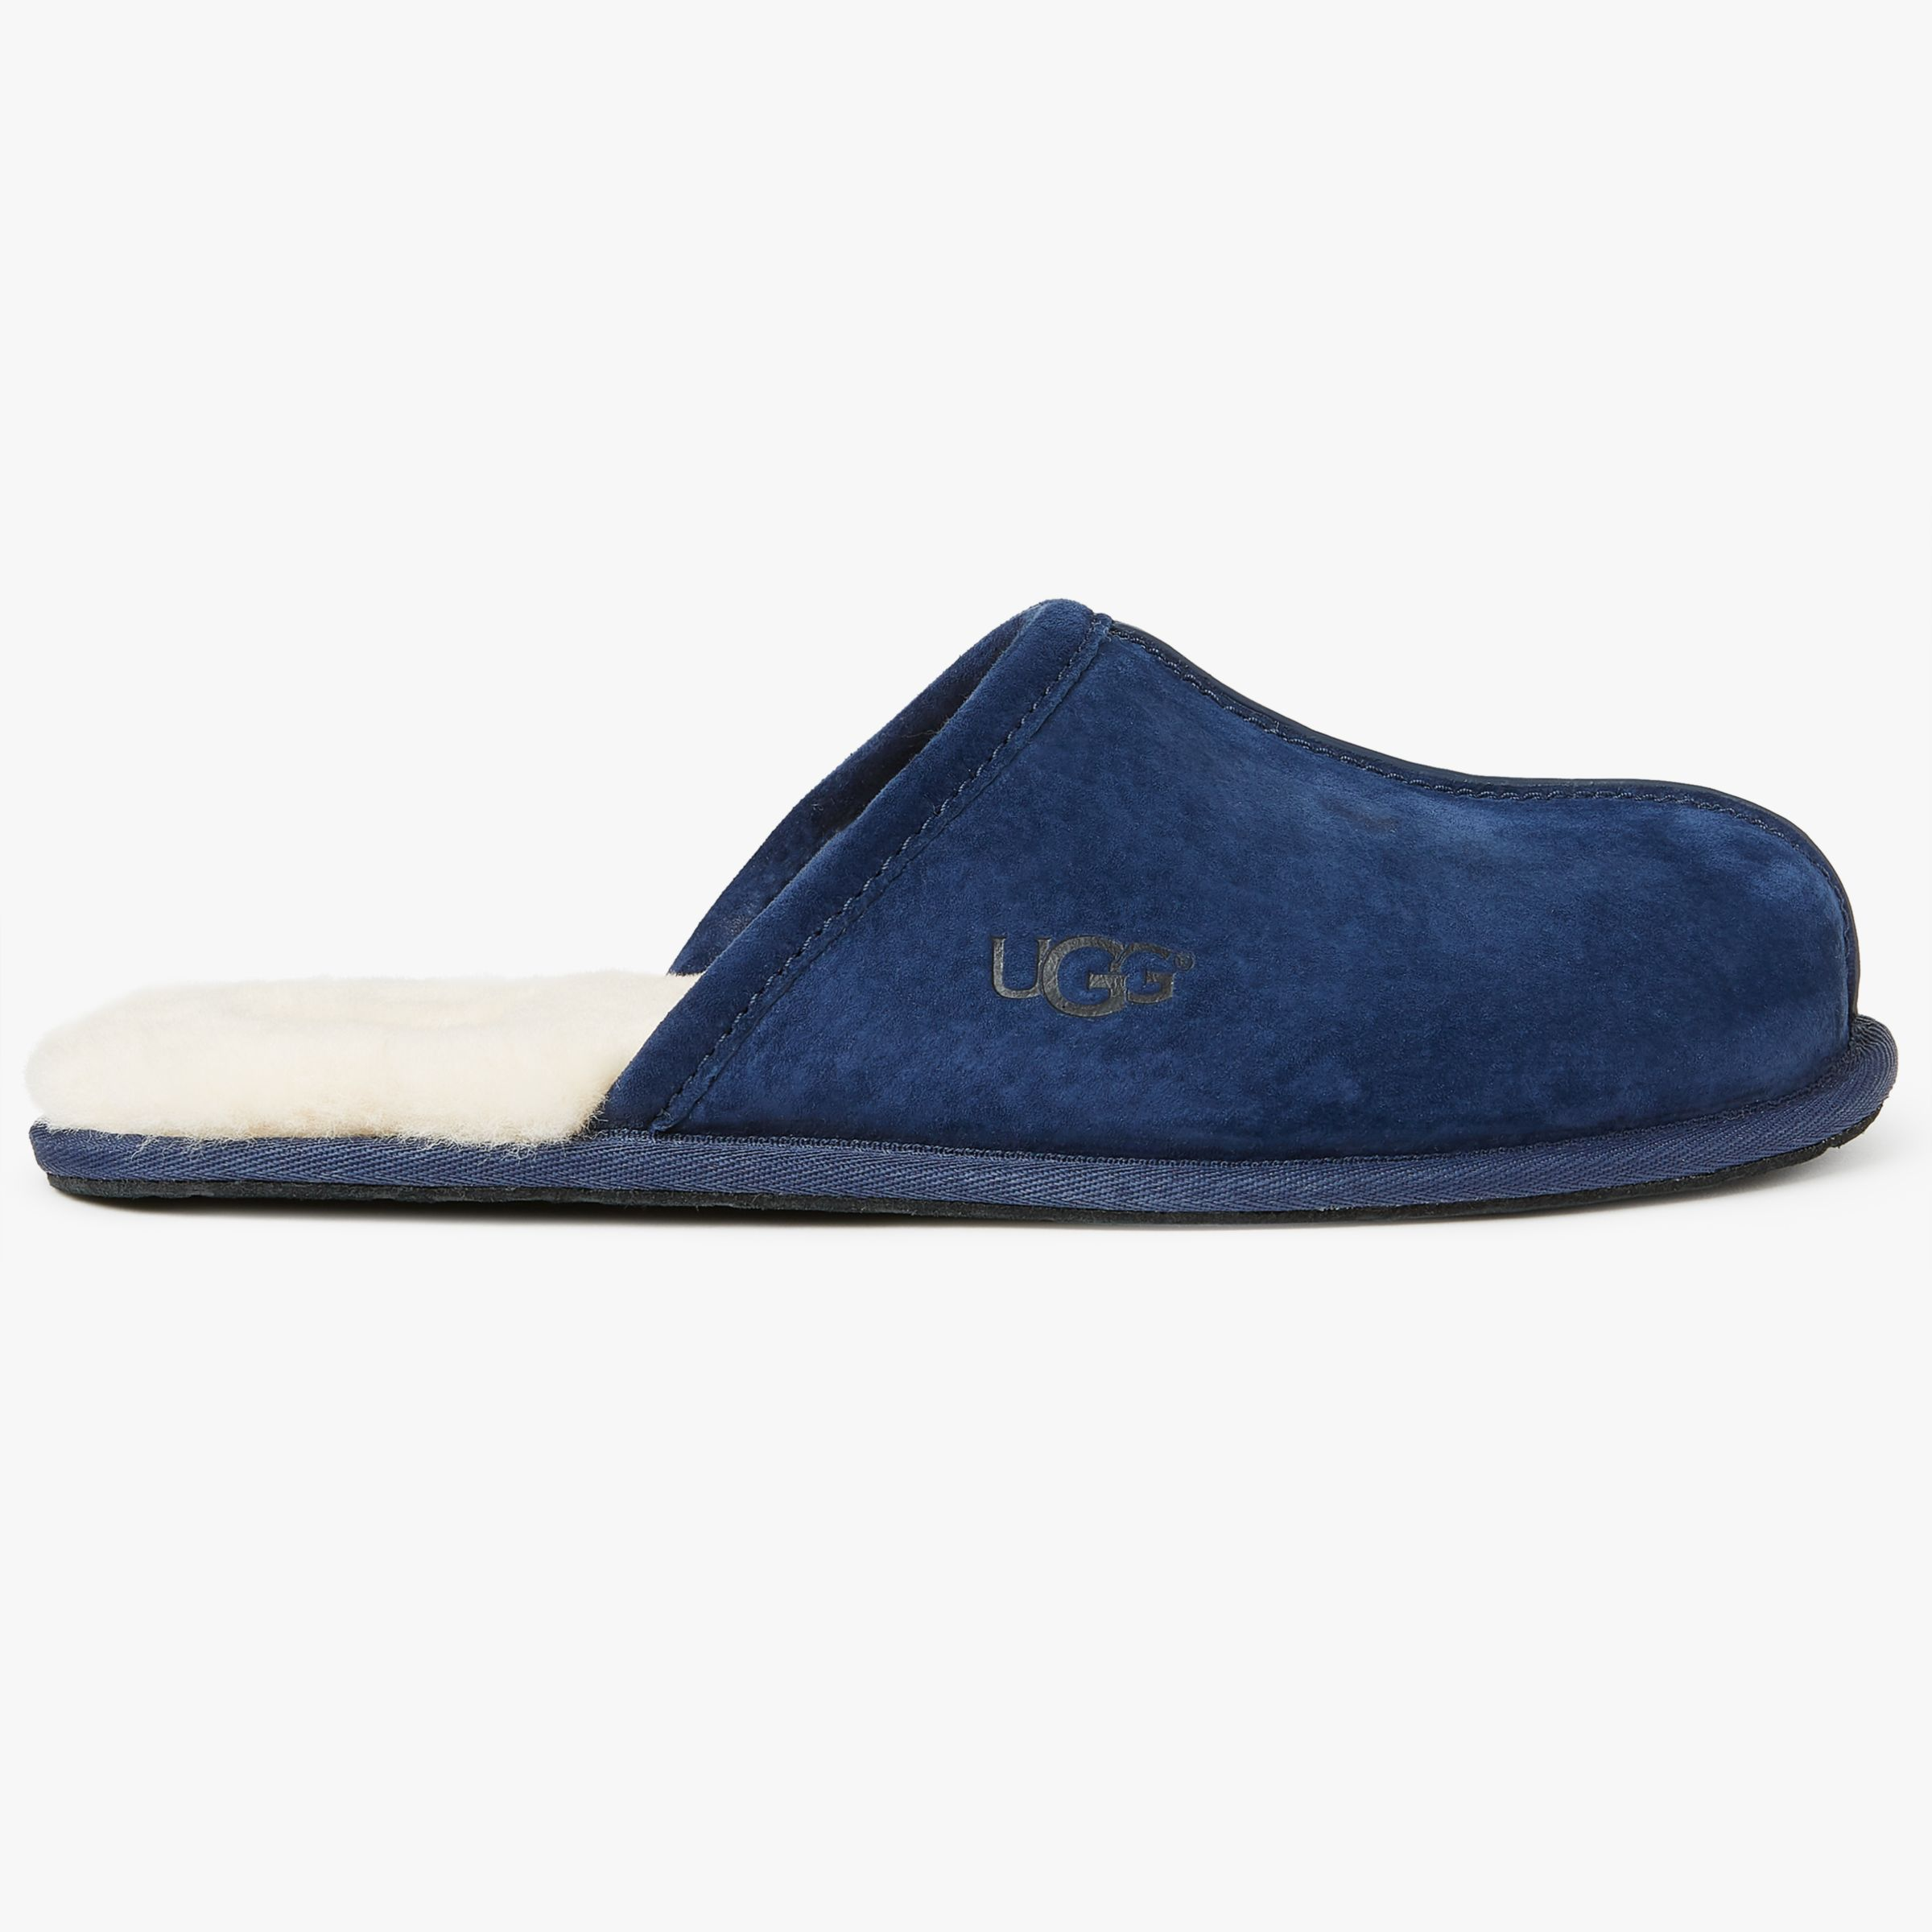 8eb7330d3 UGG Scuff Mule Suede Slippers at John Lewis & Partners